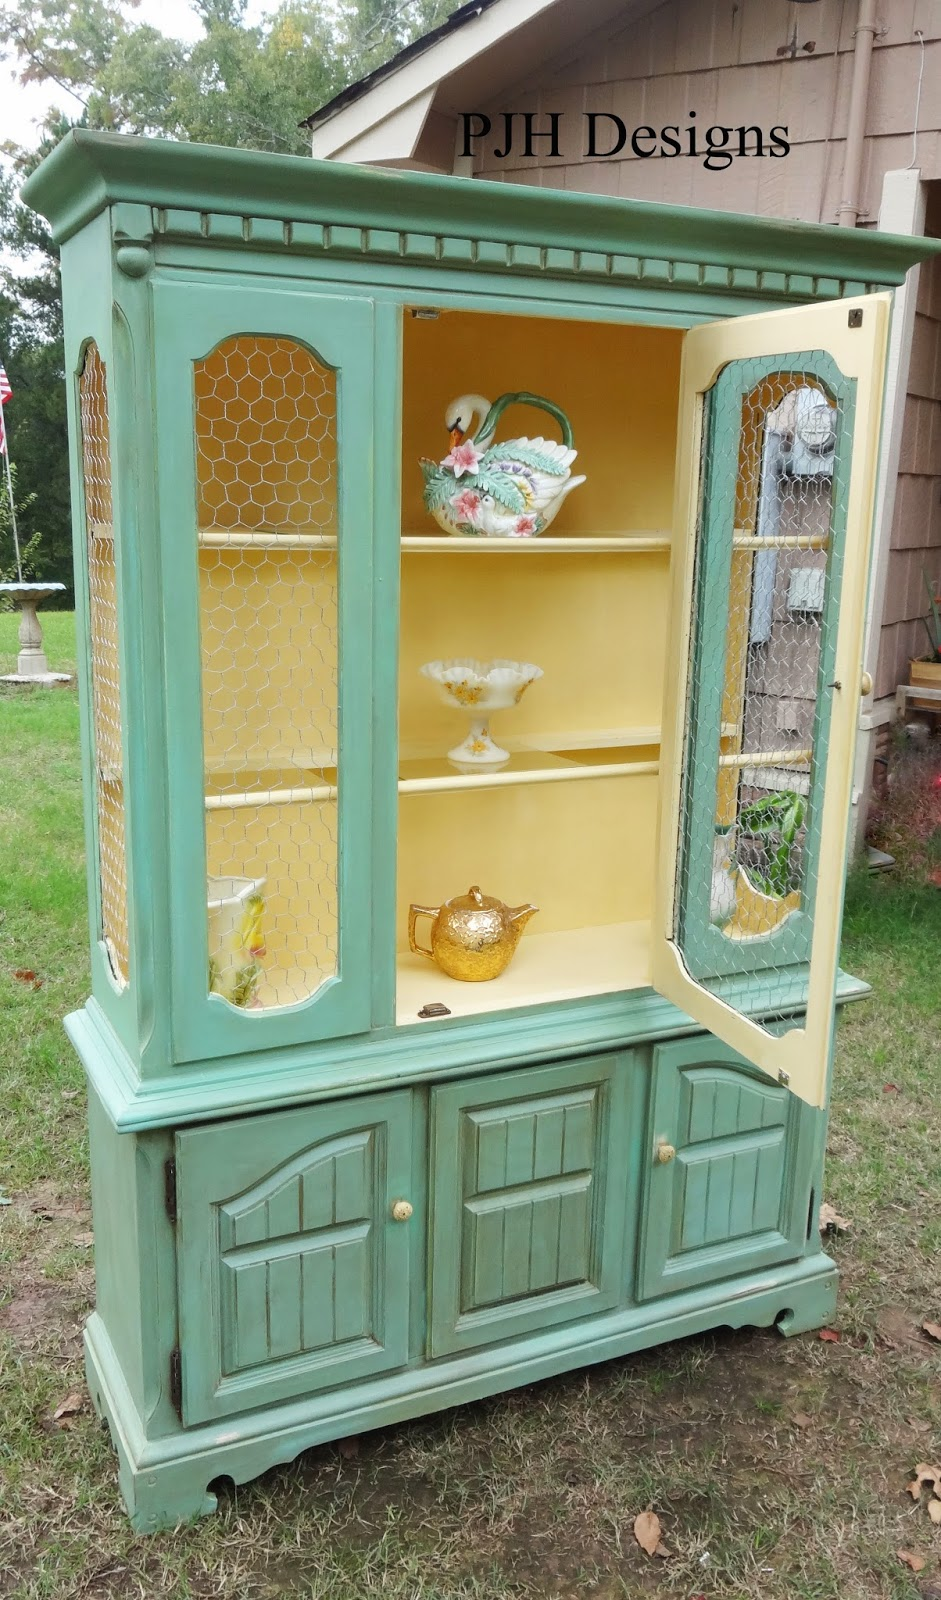 PJH Designs Hand Painted Antique Furniture December 2013